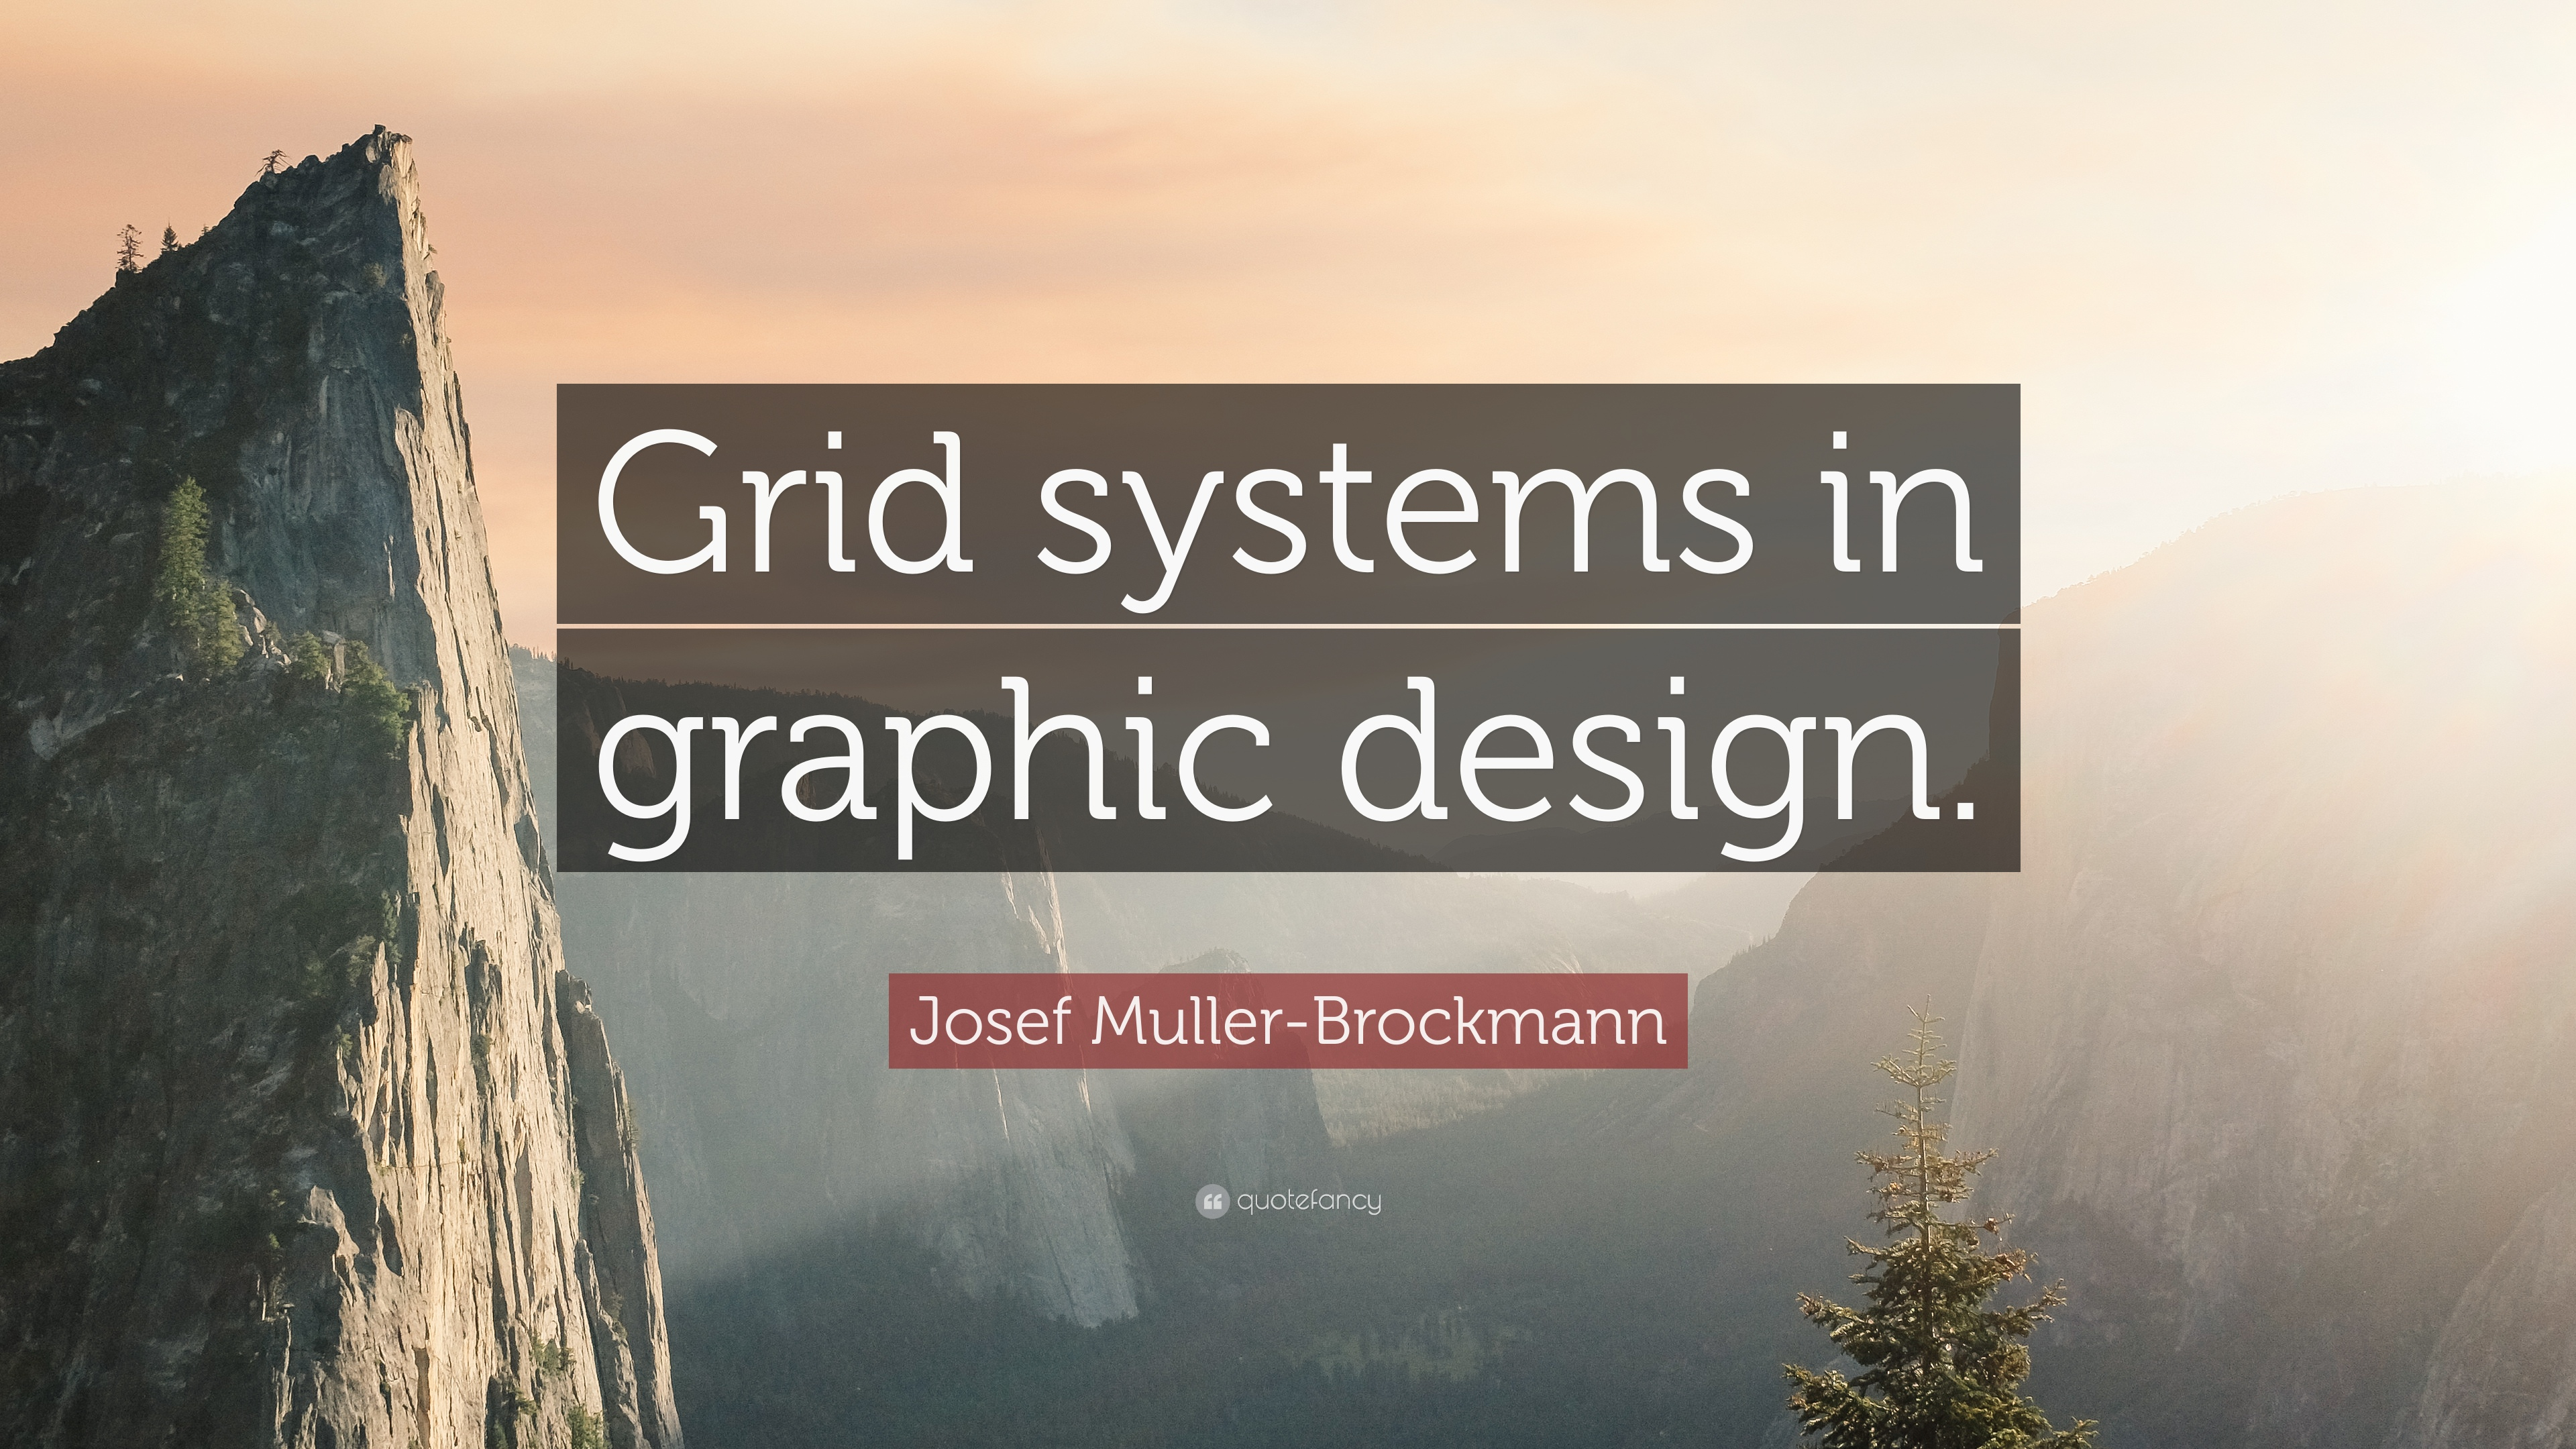 grid systems in graphic design josef muller brockmann pdf